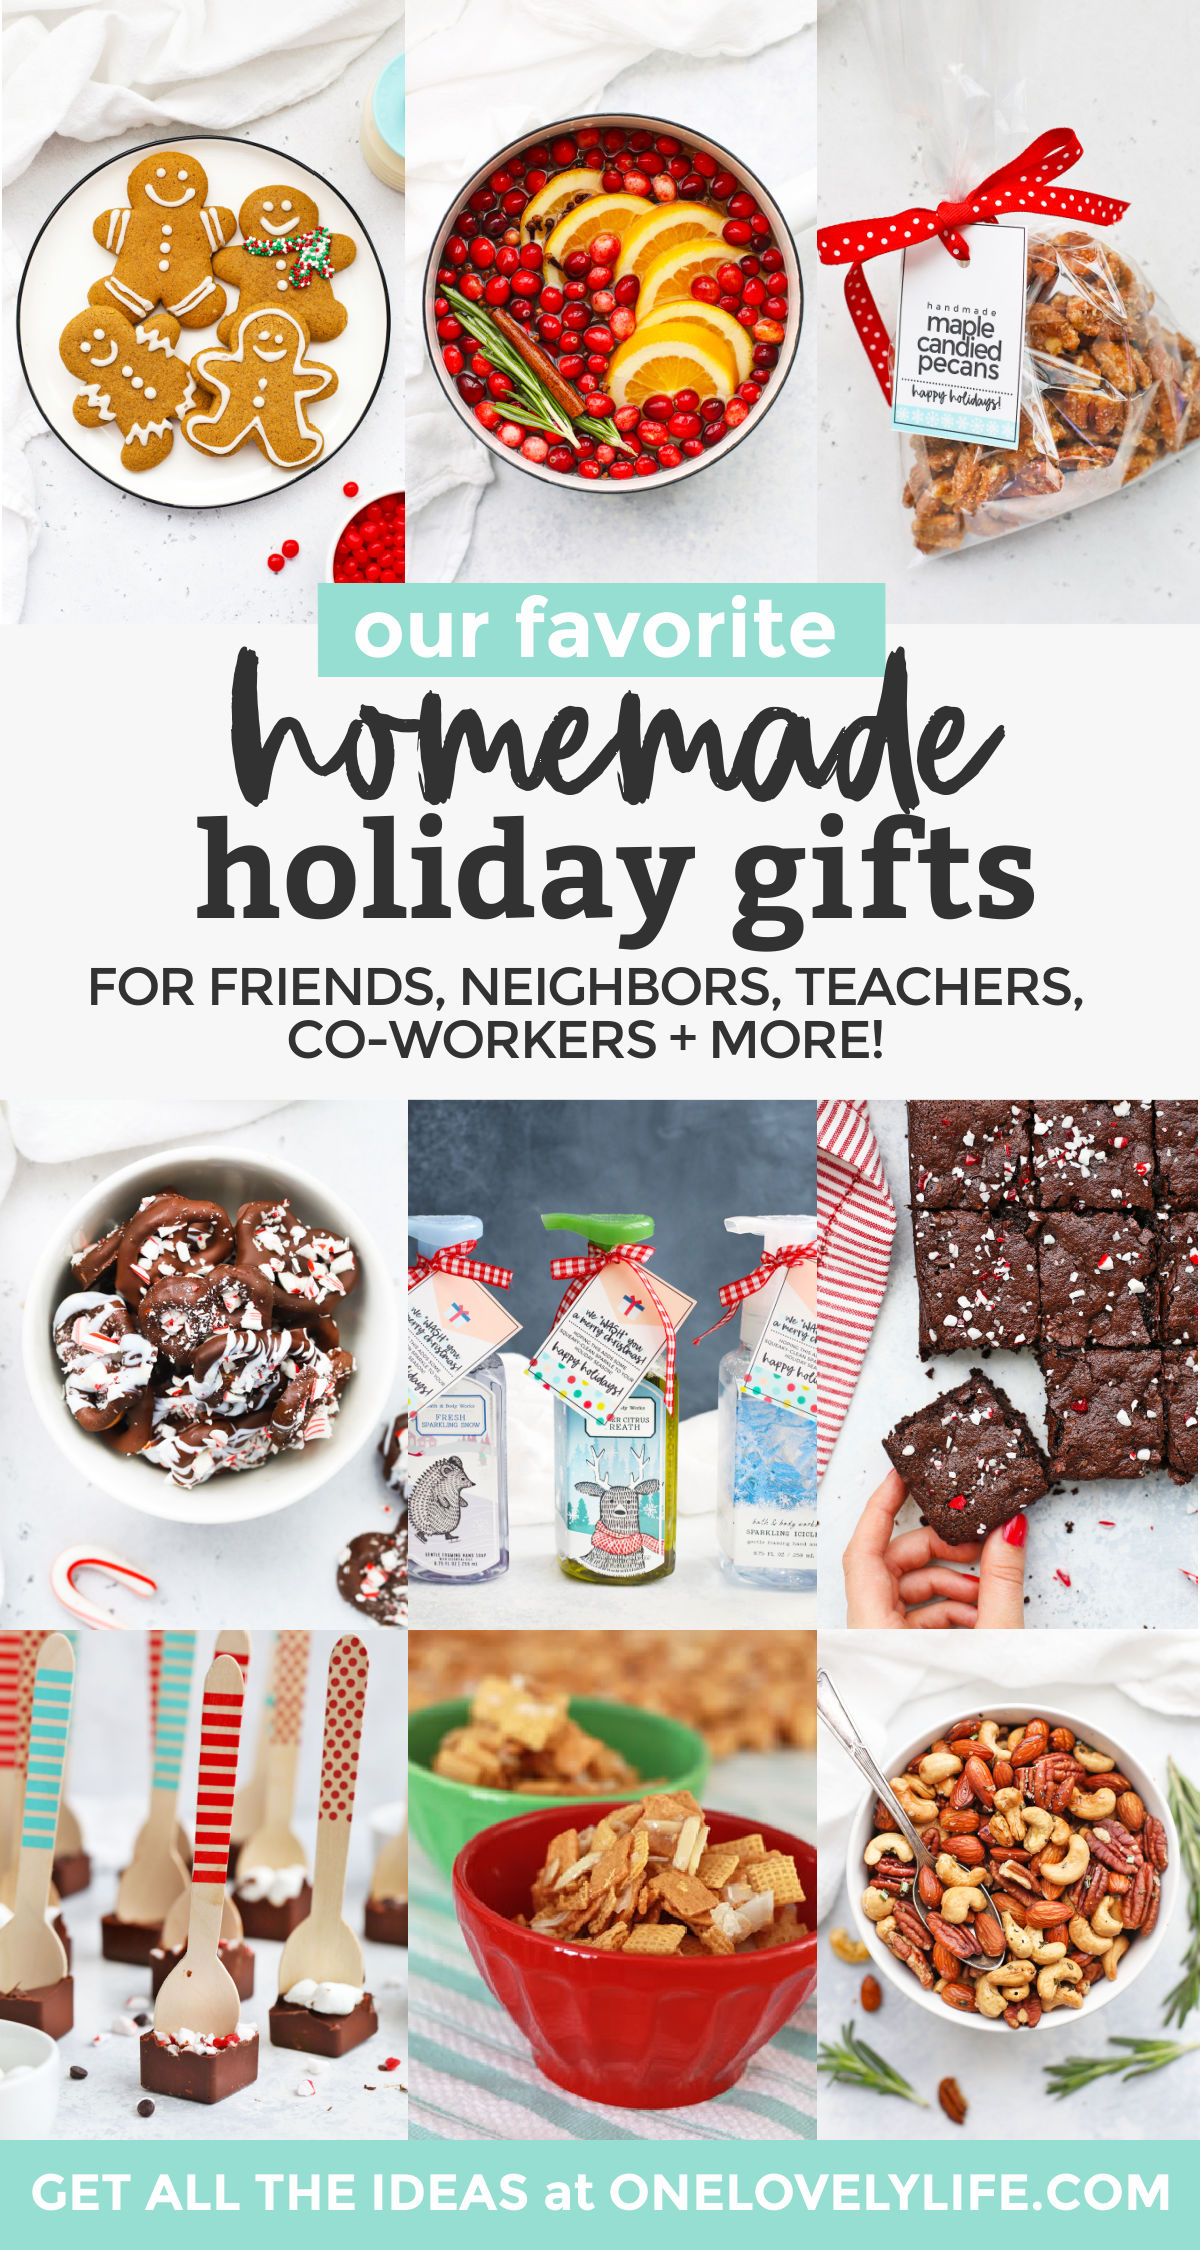 Our Best Homemade Christmas Gifts - These easy DIY holiday gifts are so fun to share with friends, neighbors, teachers, co-workers + more! // DIY Christmas Gifts // Homemade Holiday Gift // Edible Holiday Gift // Christmas Cookie Plate #giftidea #diychristmas #homemadegift